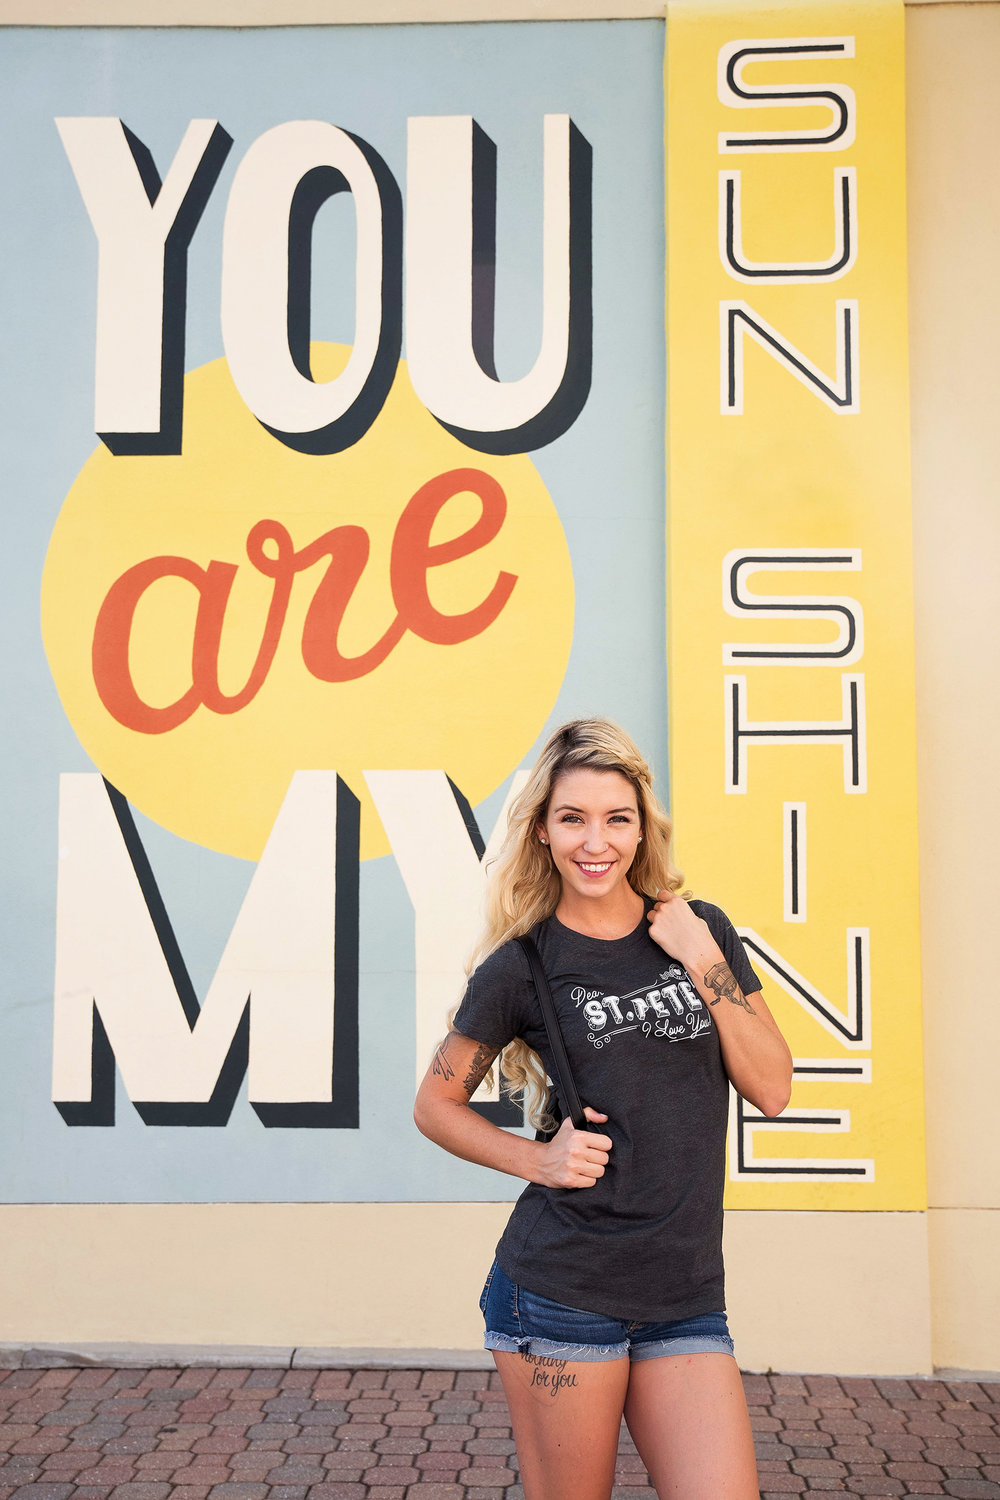 Leo-gomez-studio-marketplace-dear-st-pete-t-shirt-05